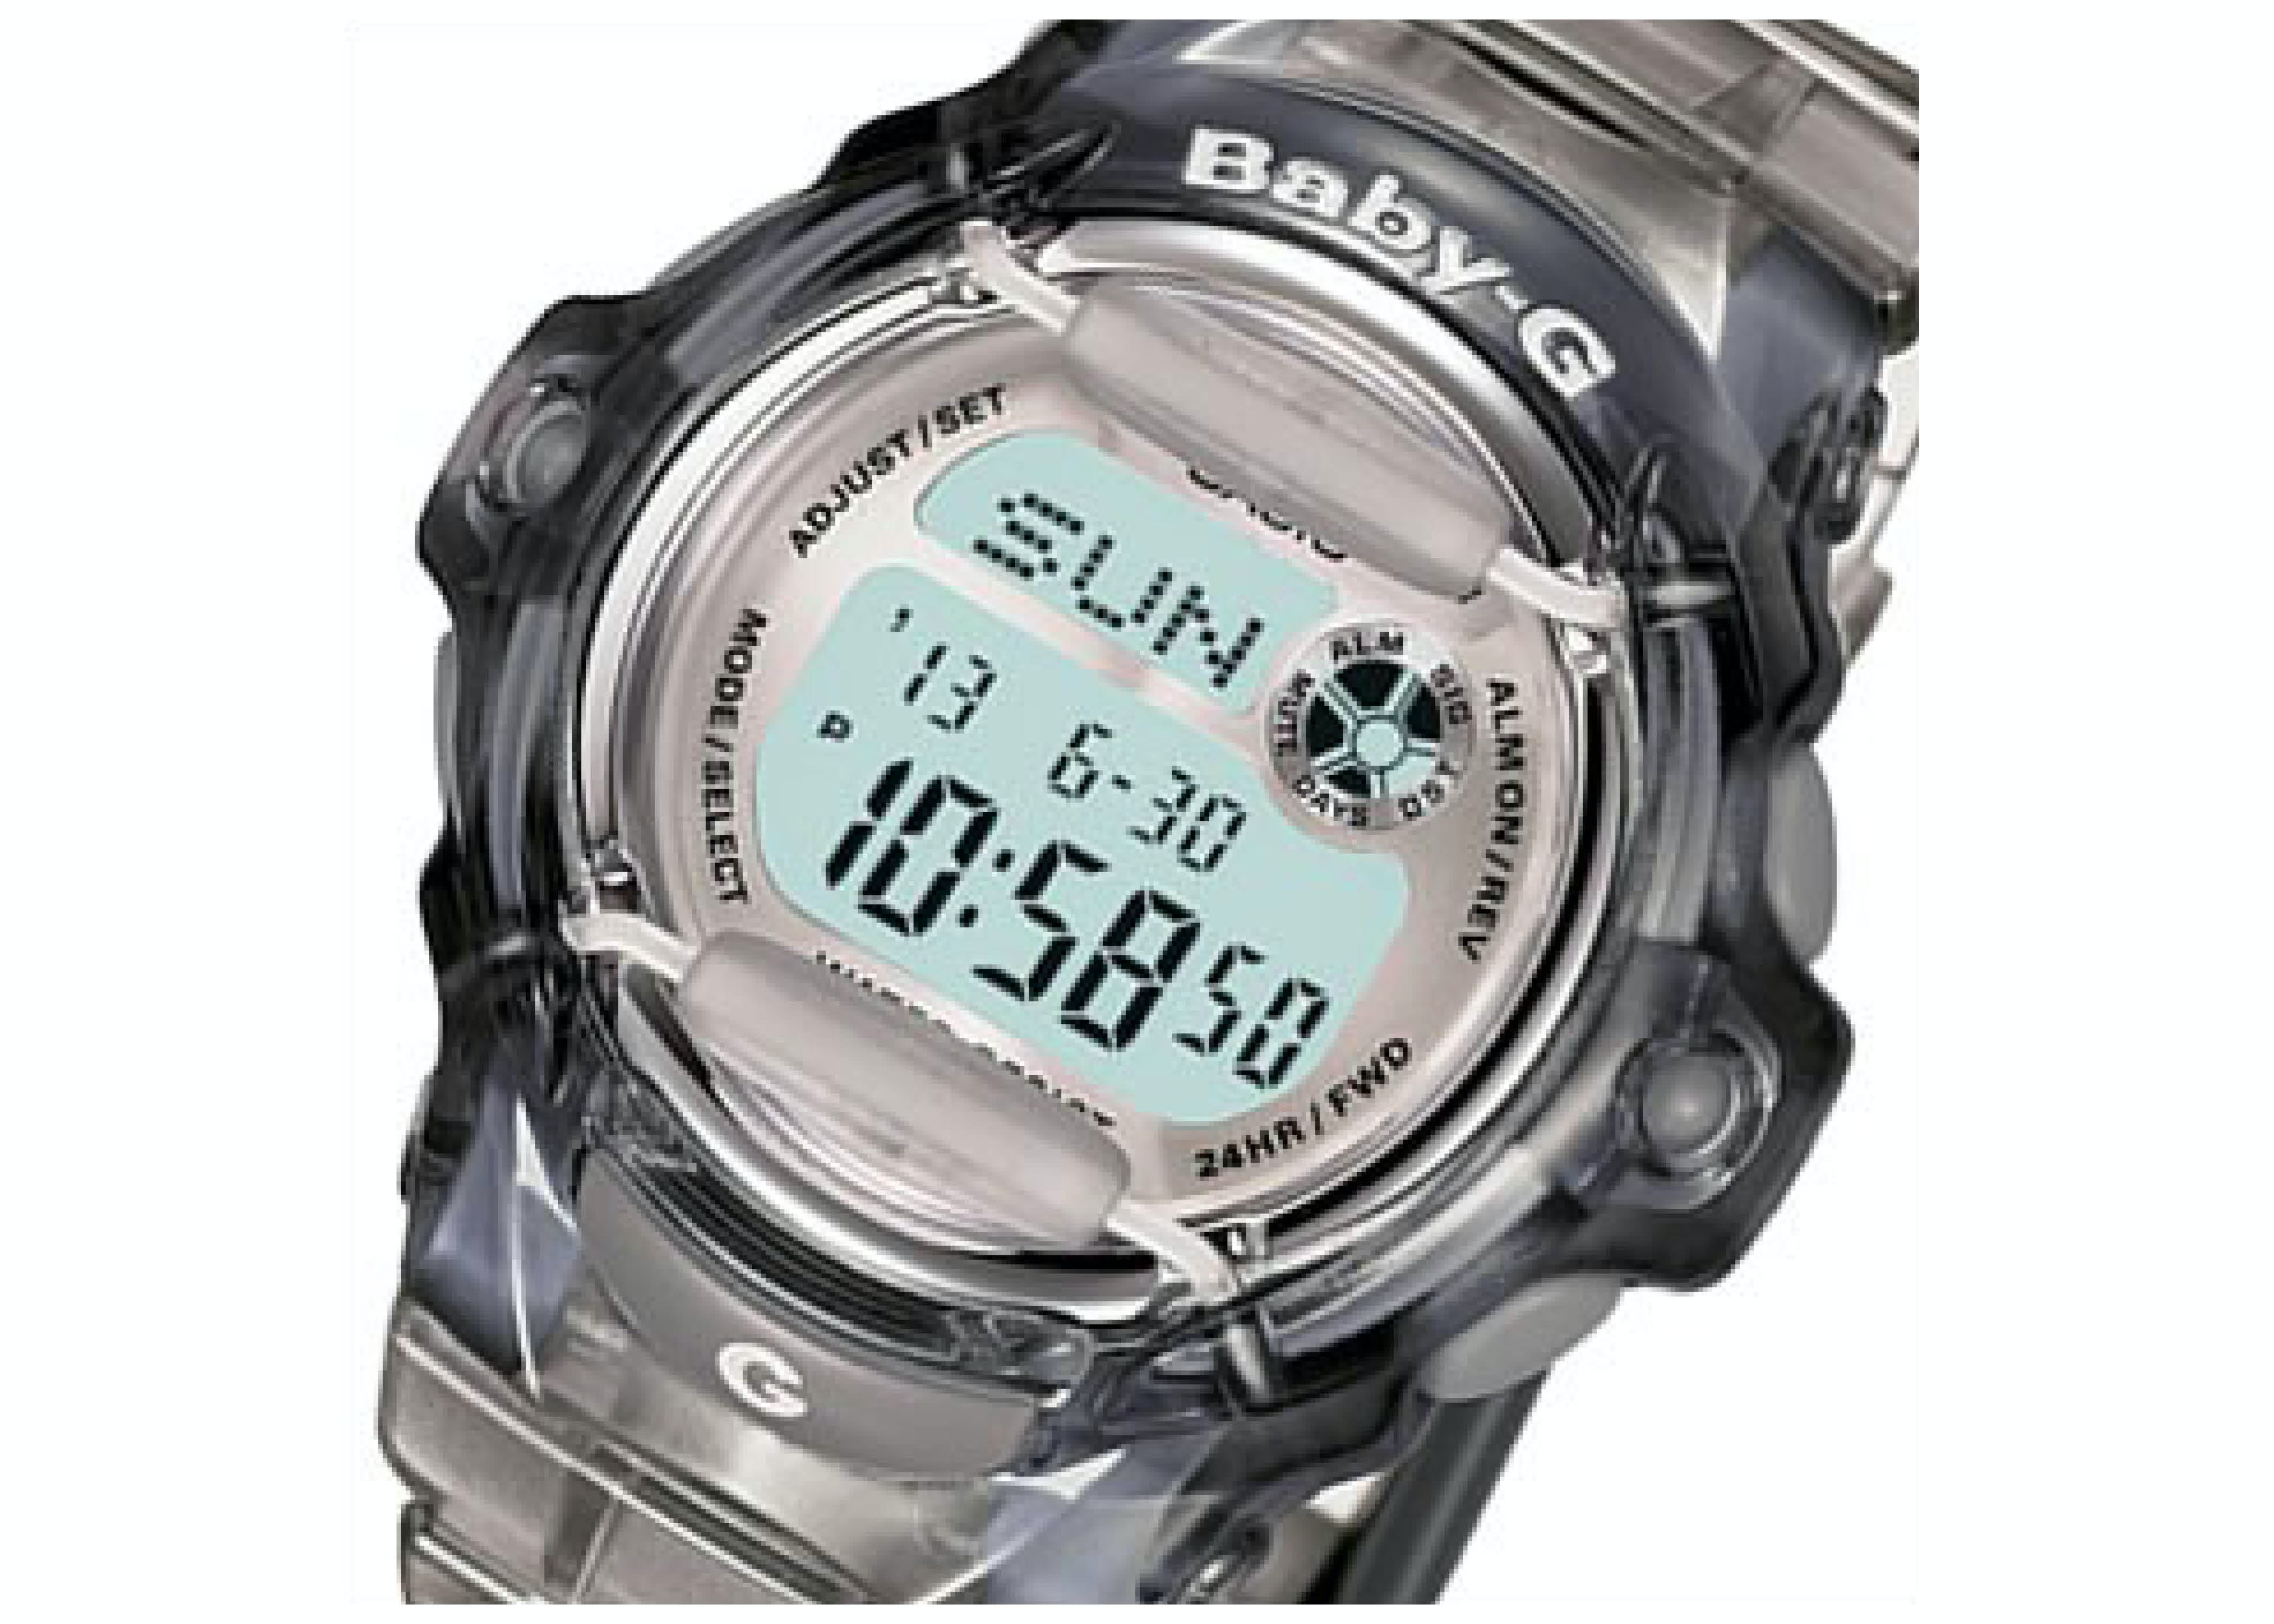 baby-G Casio BG-169R-8Dr sweepstakes